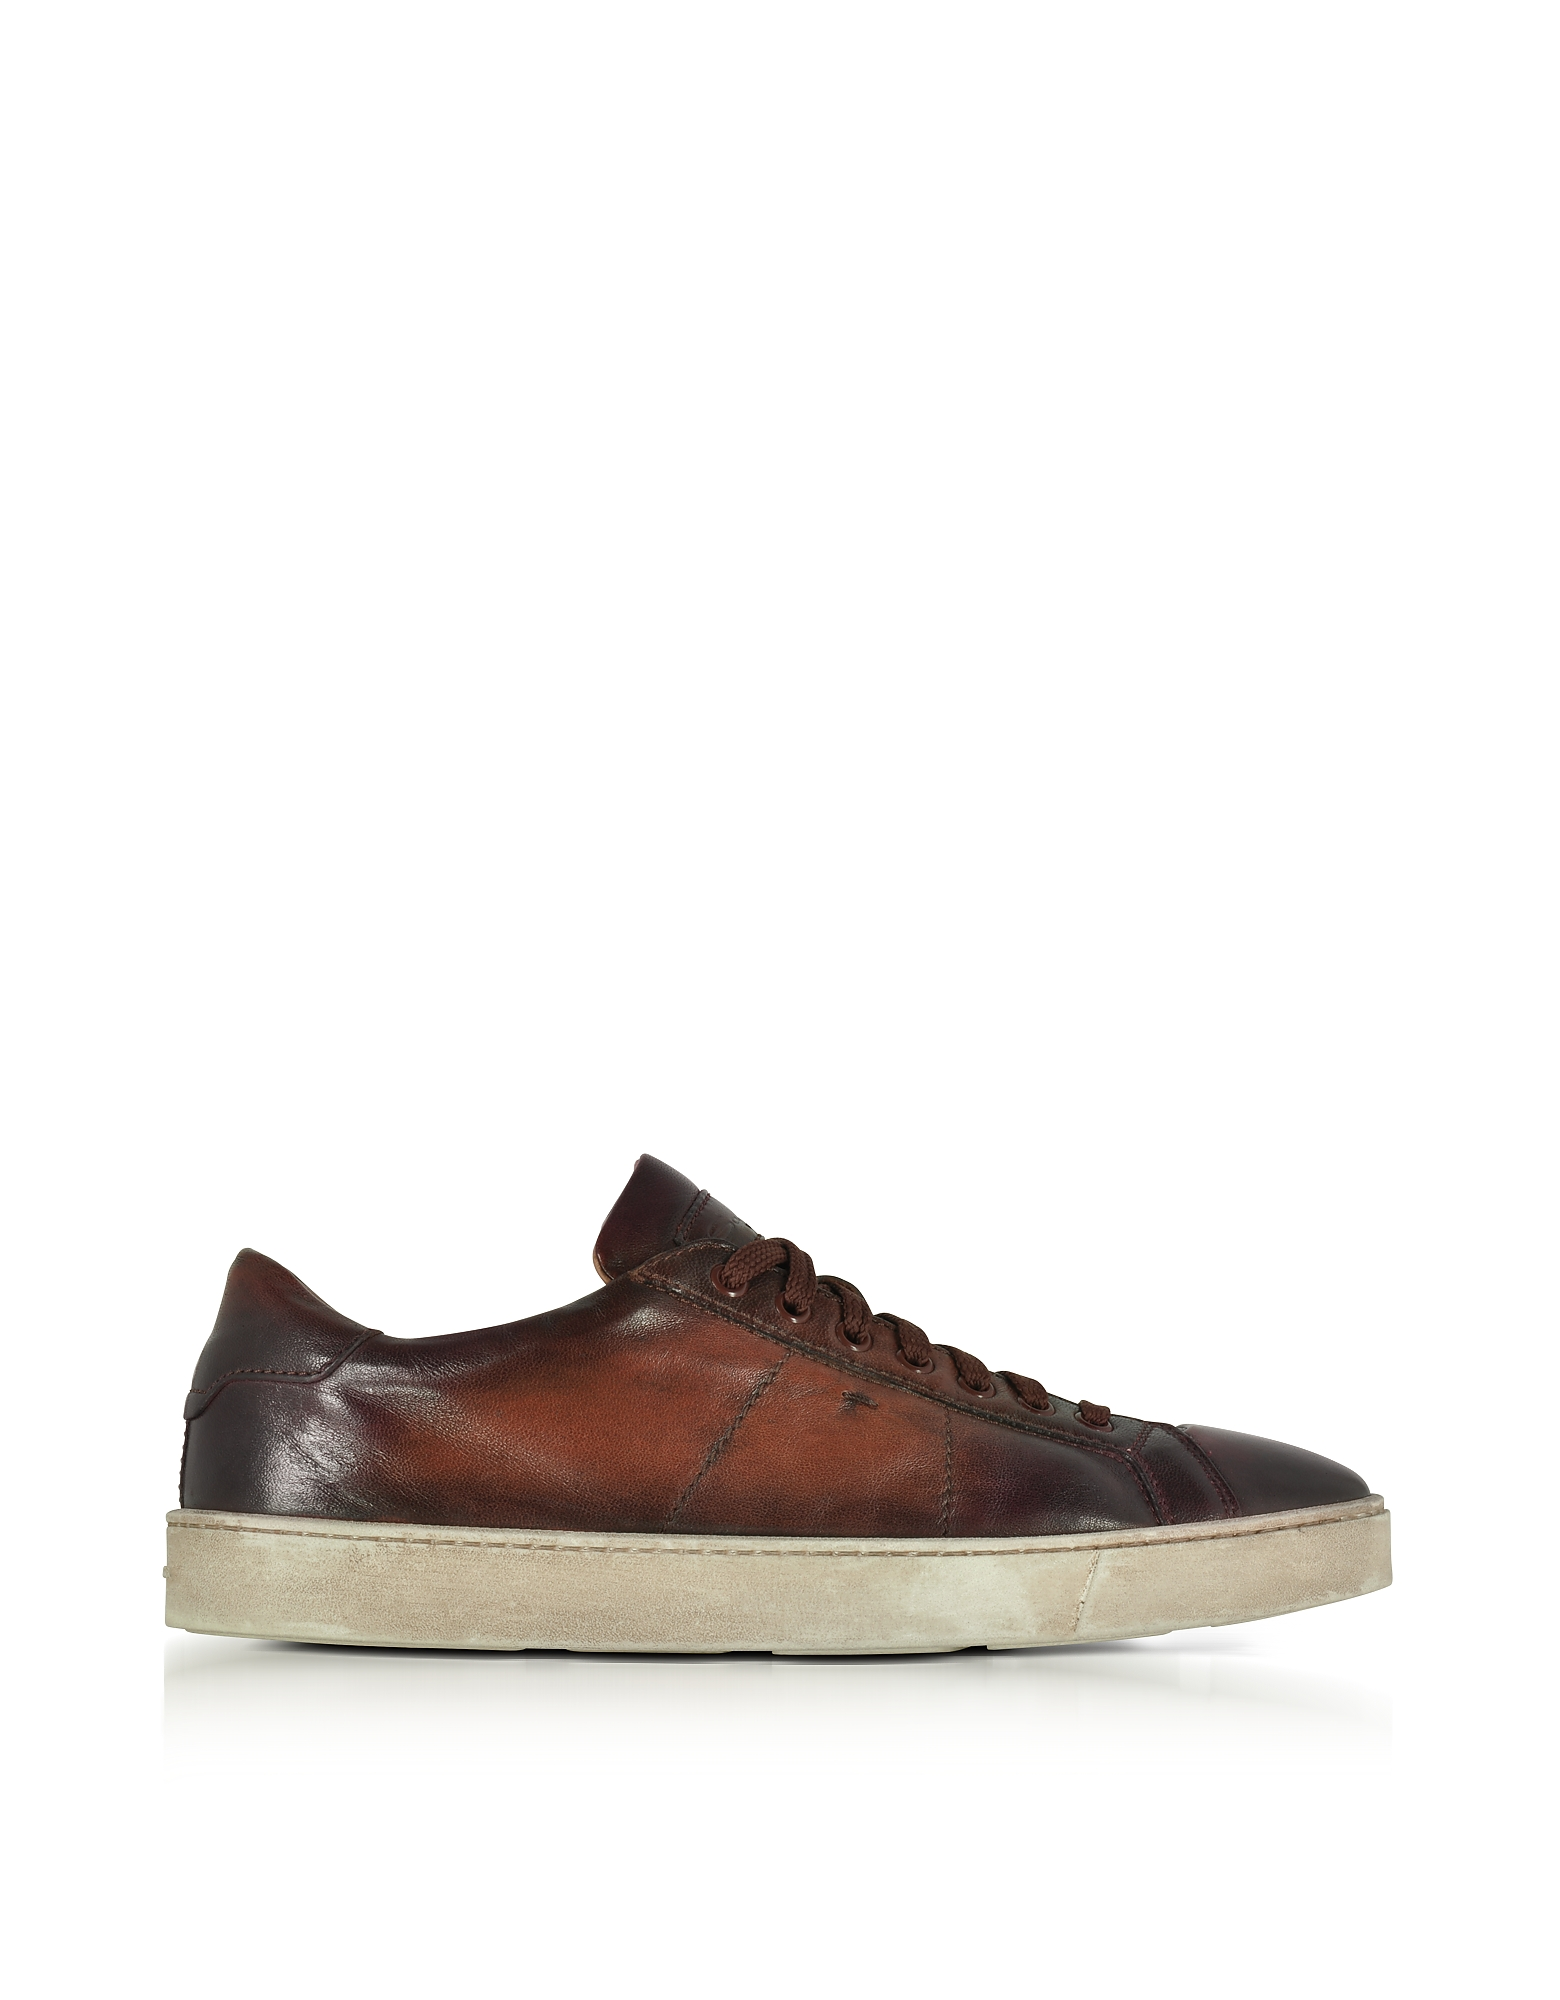 Santoni Brown Distressed Leather Low Top Men's Sneakers